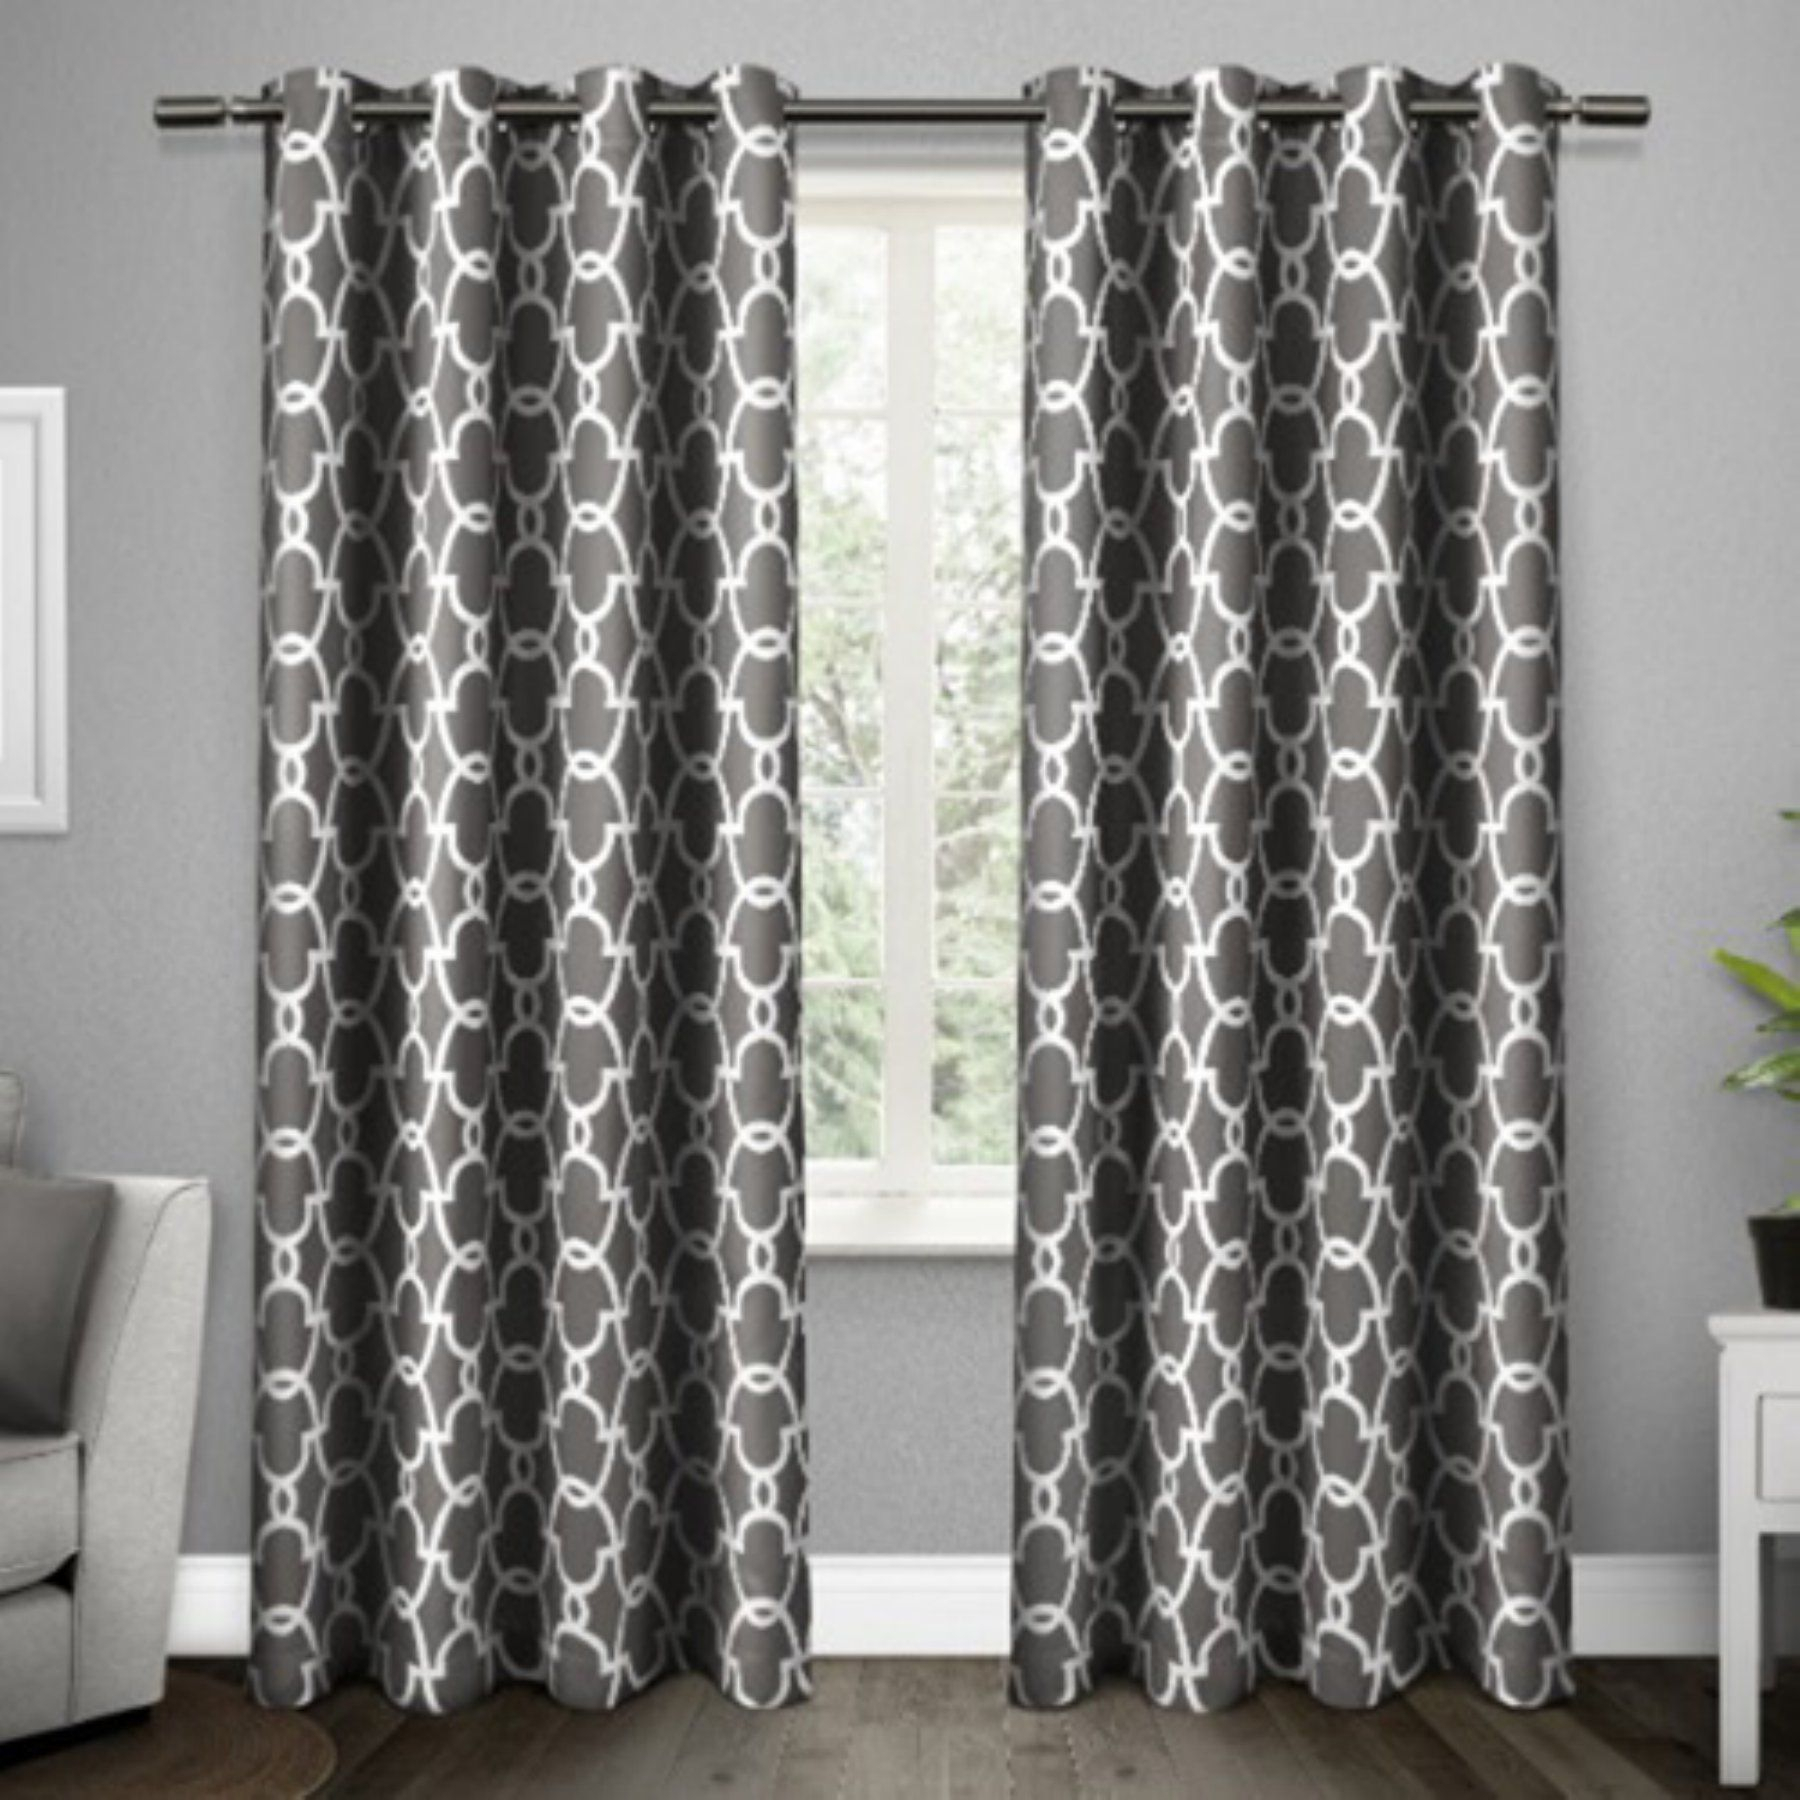 Exclusive Home Gates Window Curtain Panel Pair – Eh8135 01 2 Regarding The Curated Nomad Duane Jacquard Grommet Top Curtain Panel Pairs (View 8 of 30)